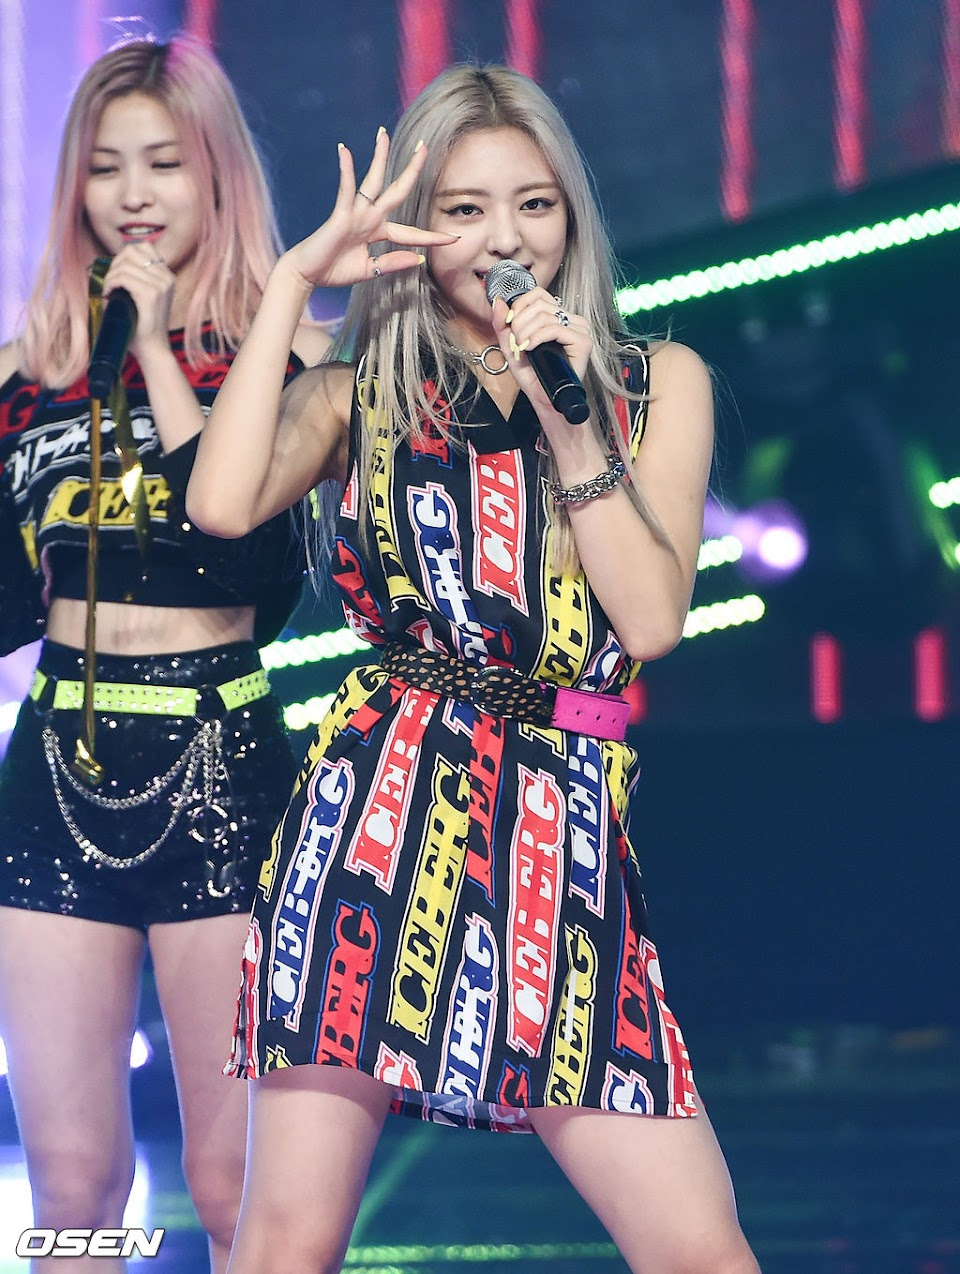 yuna show champion visual 2